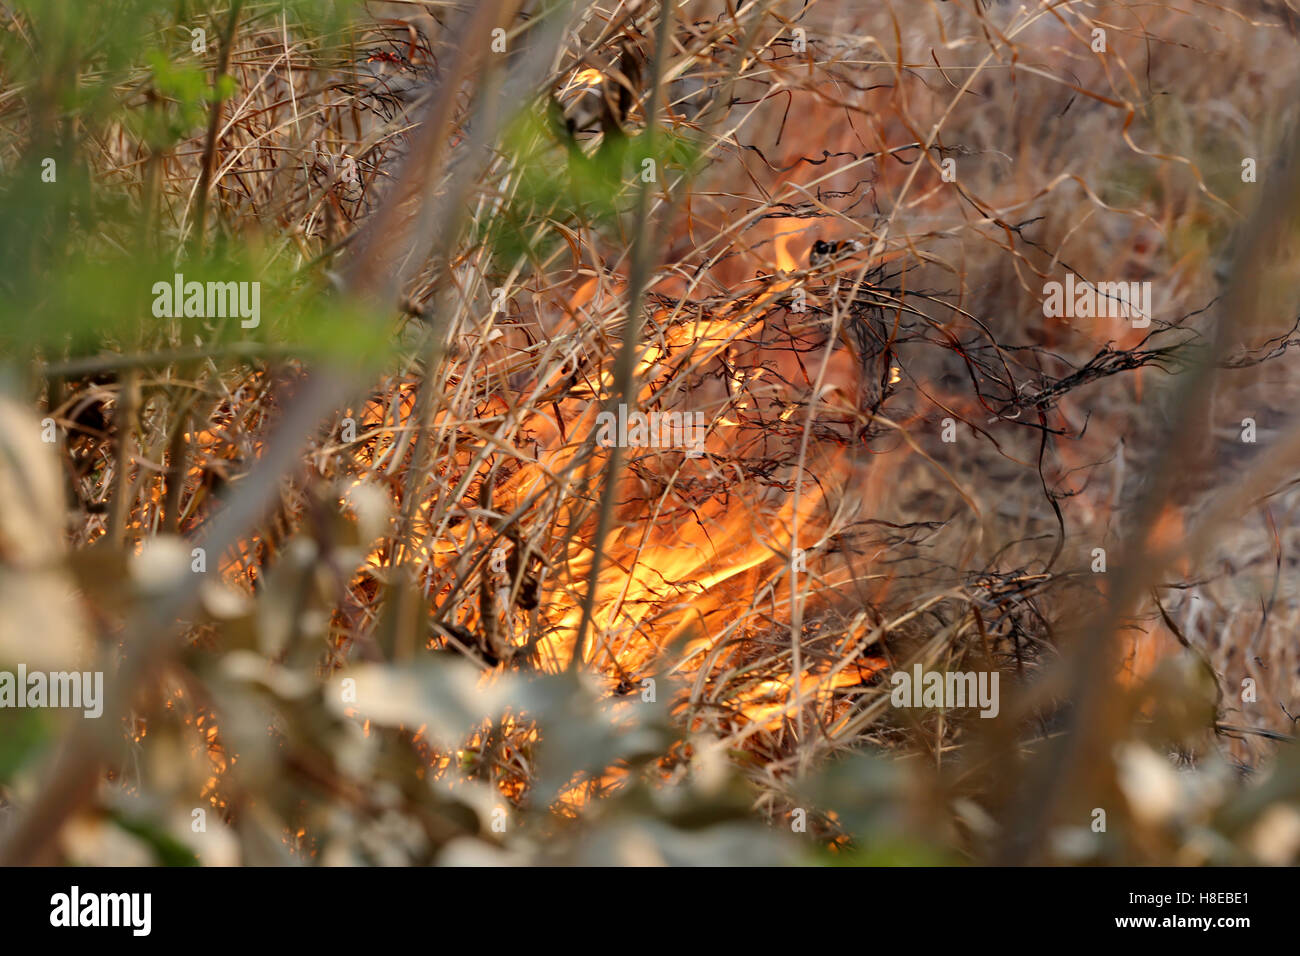 Summer wildfires burning in the Forest at rural area of Khon